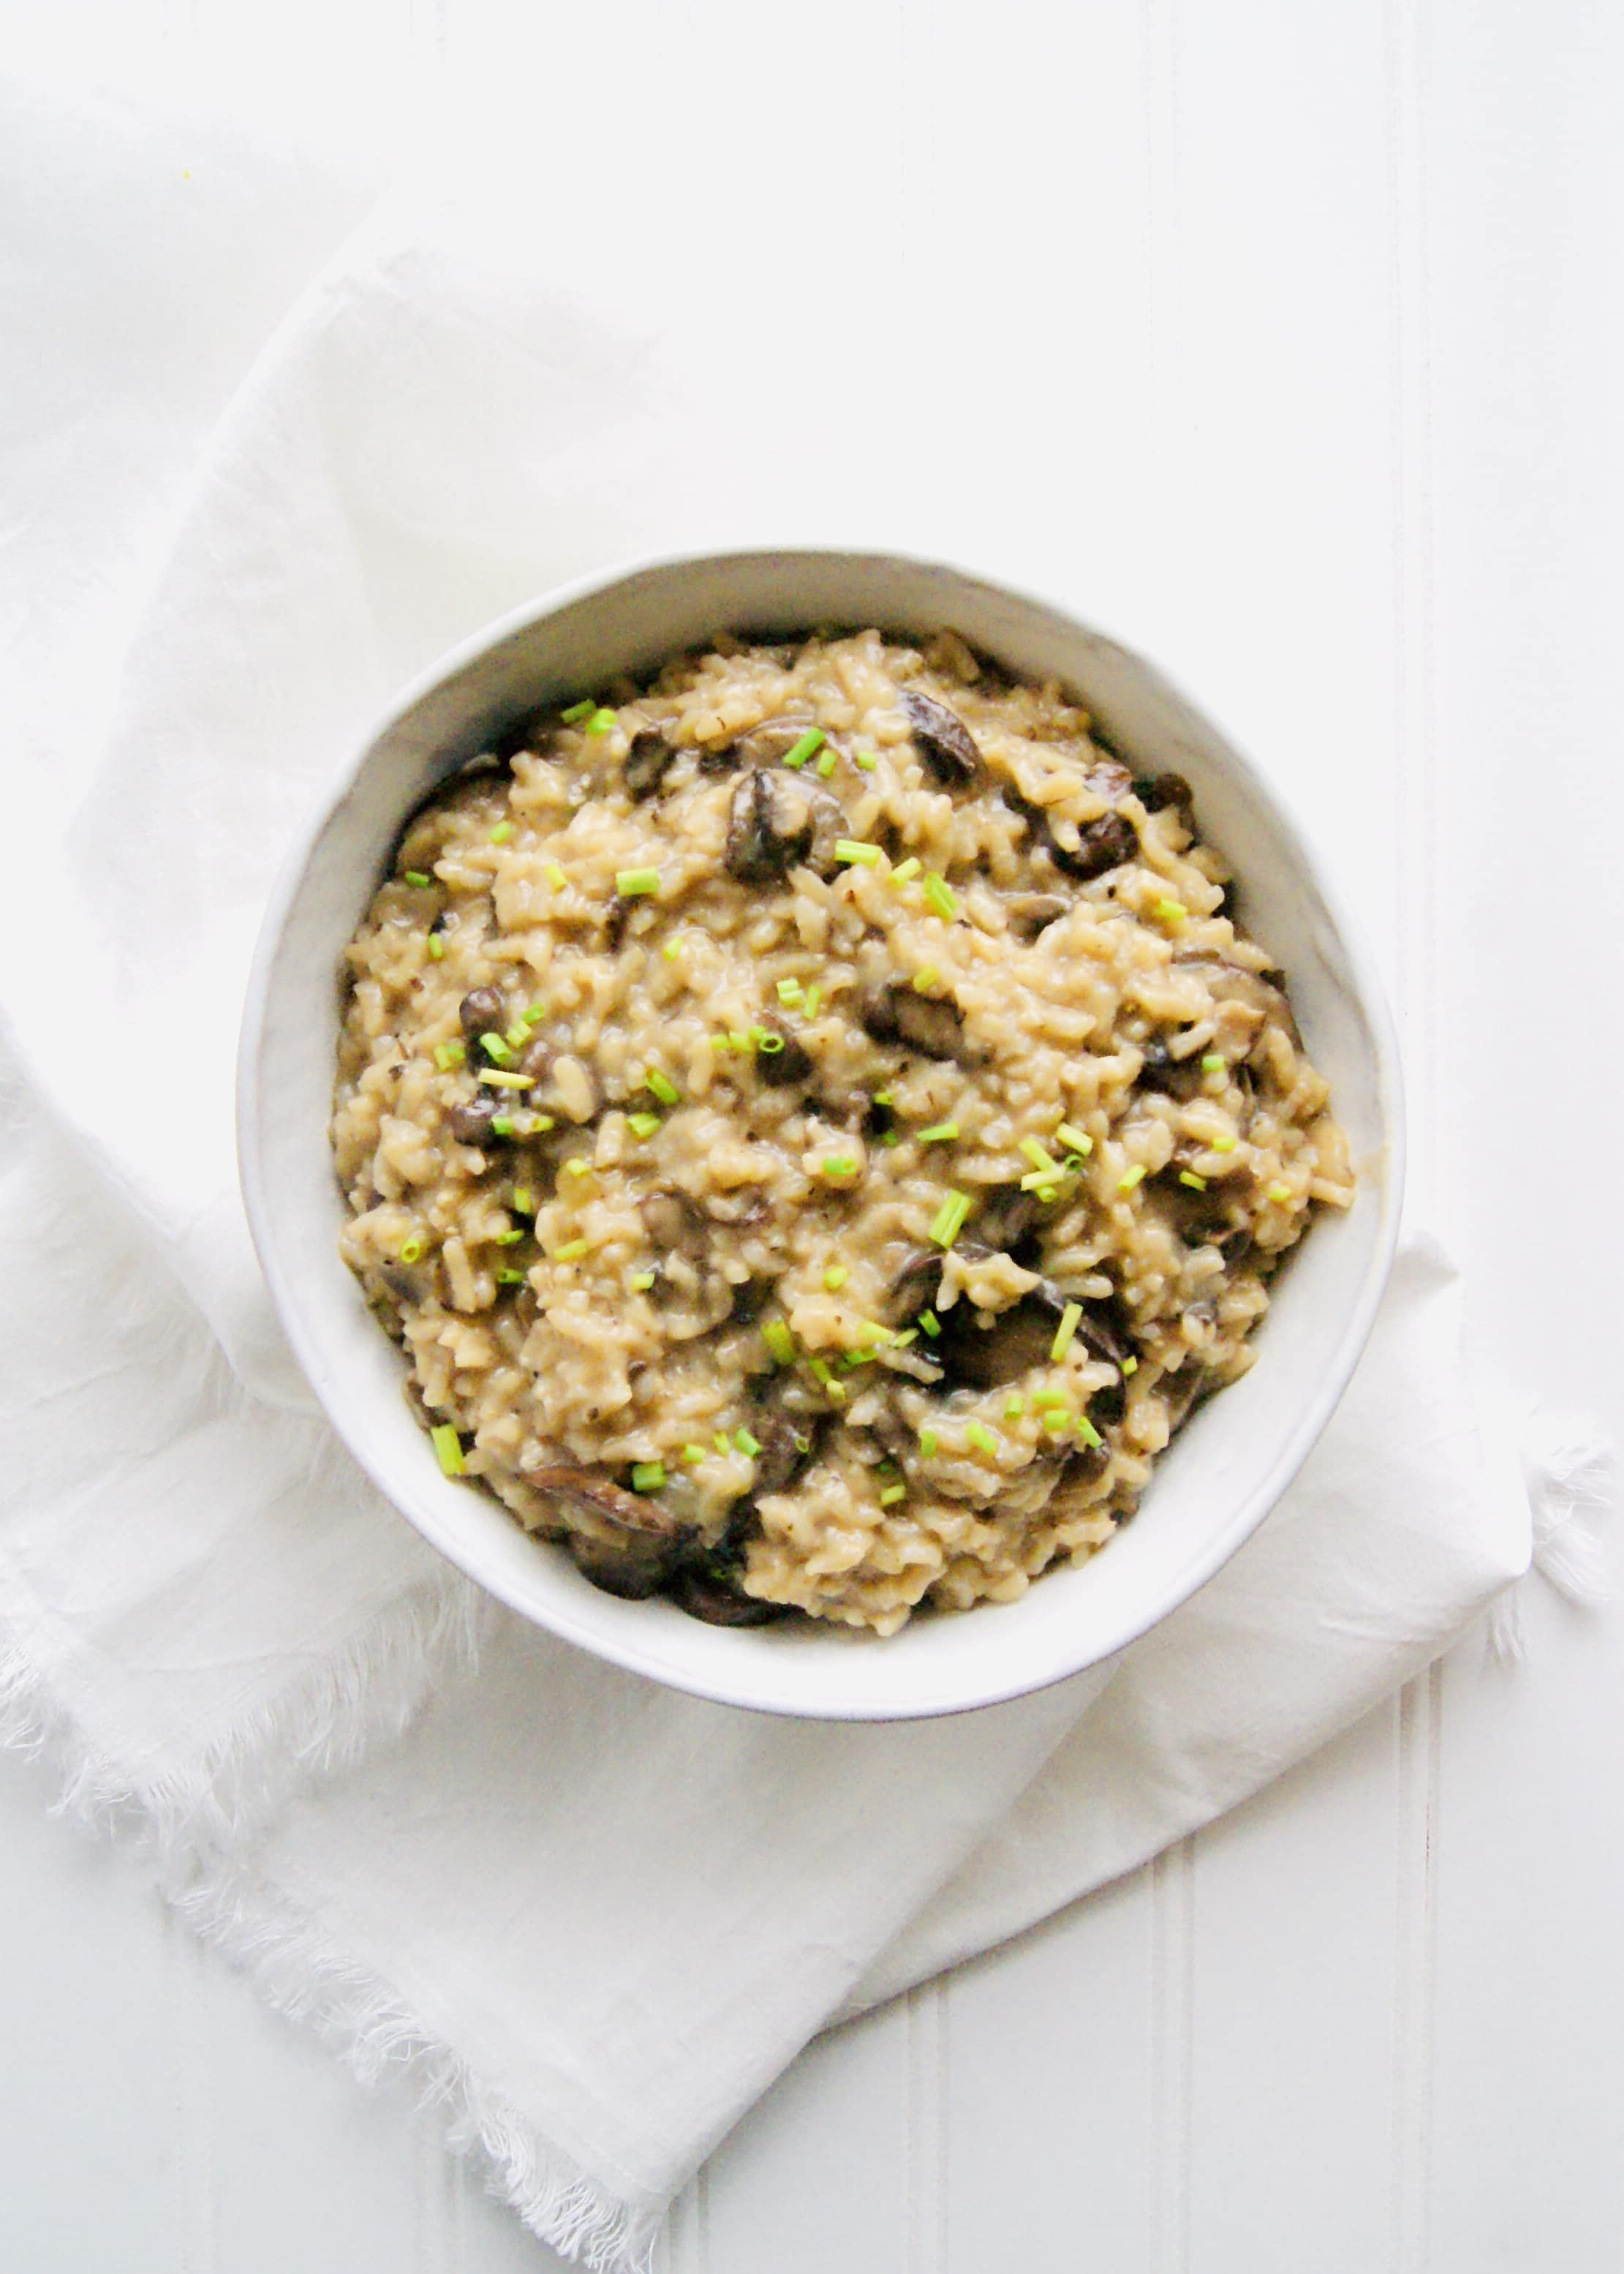 Instant Pot Mushroom Risotto is creamy and easy to make. Let the Instant Pot do all the work! Just a 7 minute cook time for this creamy mushroom risotto. Recipe at KathleensCravings.com #instantpot #risotto #instantpotrisotto #kathleenscravings #mushroomrisotto